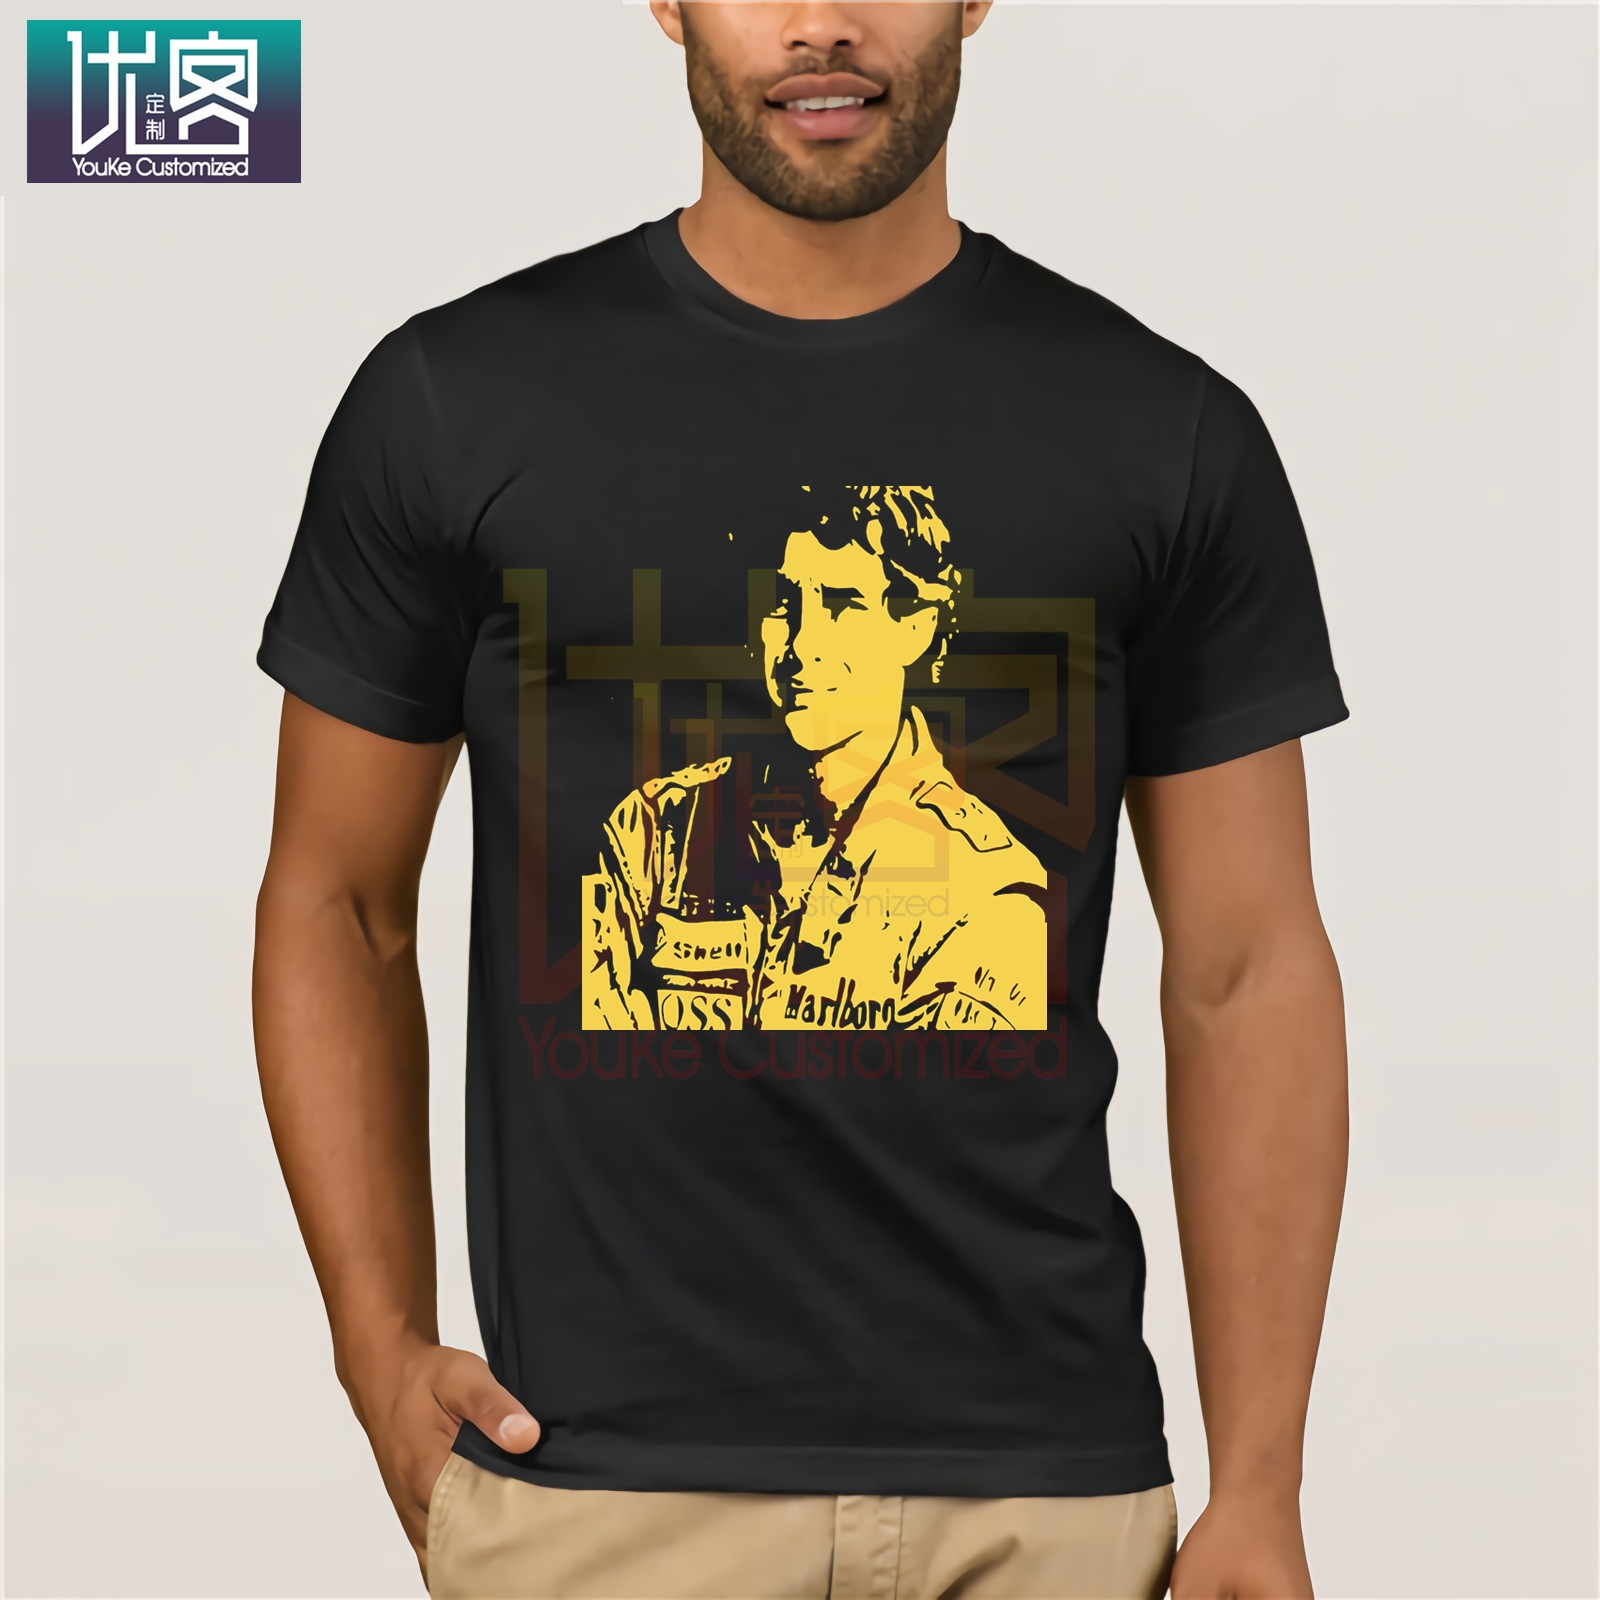 portrait-ayrton-font-b-senna-b-font-pop-art-watercolor-legend-pilot-t-shirt-clothes-popular-t-shirt-crewneck-100-cotton-tees-for-men-tops